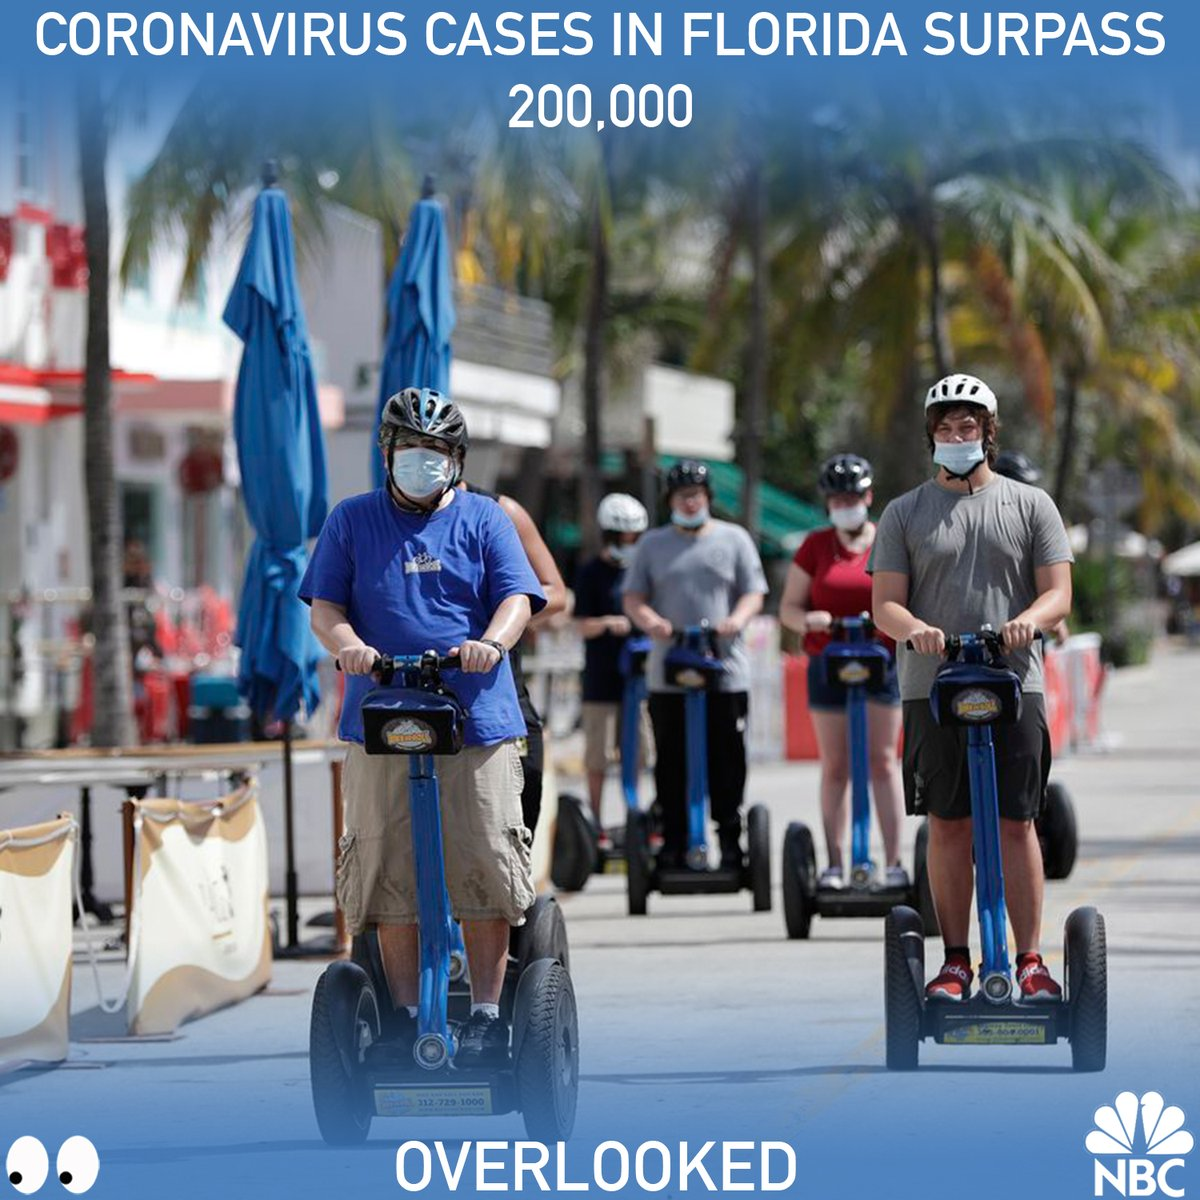 Florida reported another 10,059 positive COVID-19 cases Sunday, marking the 4th day in a row that at least 10,000 new cases were reported in a day, pushing total state numbers to pass 200,000. Read more by NBC on https://t.co/ovrXsfJxDU  #Florida #COVID #Hotspot #NBC #overlooked https://t.co/JqqNFfkQWT